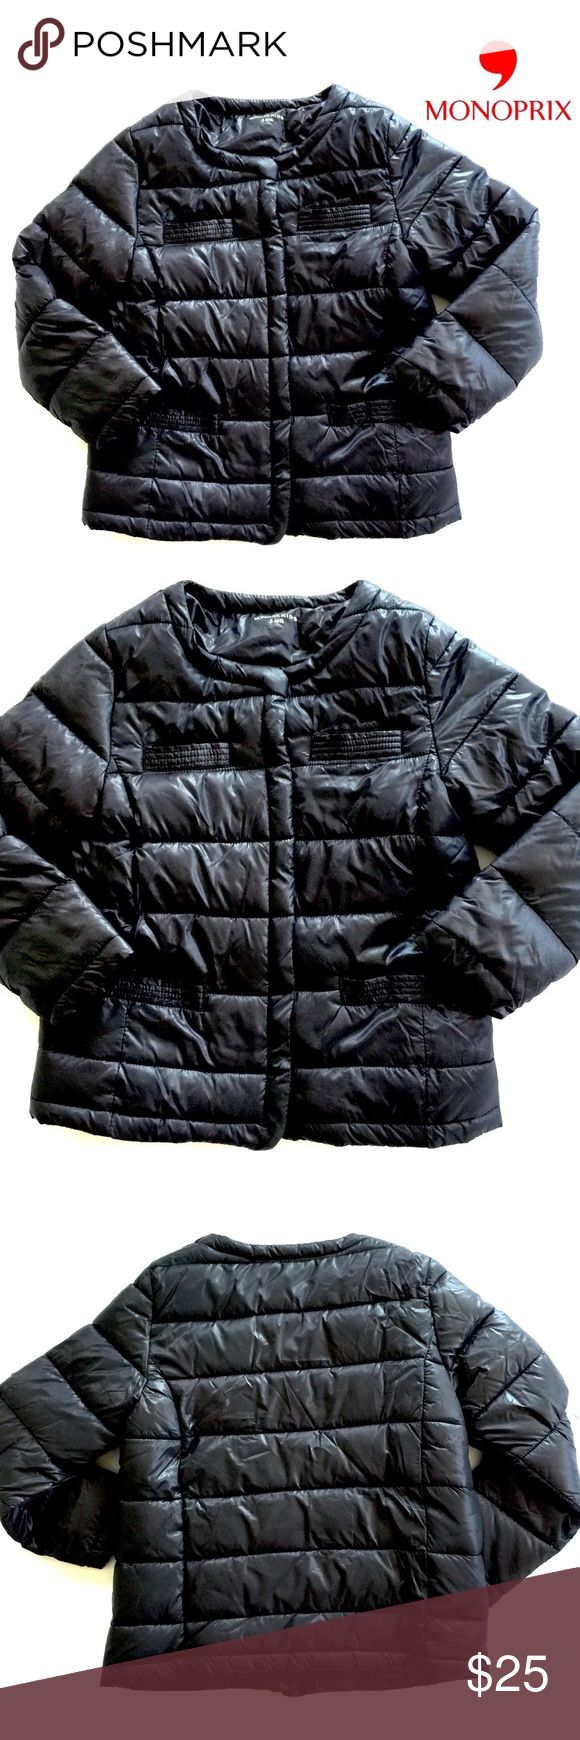 """Authentic Monoprix Paris Puffer Coat in Girls' 7/8 This authentic Monoprix Paris Puffer Coat in Girls' 7/8 is in excellent used condition. Purchased in Paris, France, at the famous Monoprix. This puffer jacket features 4 front pockets and 8 snap closure.  No irritating tags!  Features an unused name & phone number tag! Size reads """"8 ans"""", which translates to 8 years; but it fits small. I chose to call it a 7/8. It is washable with like colors and cold water. The dryer is not recommended.  It…"""